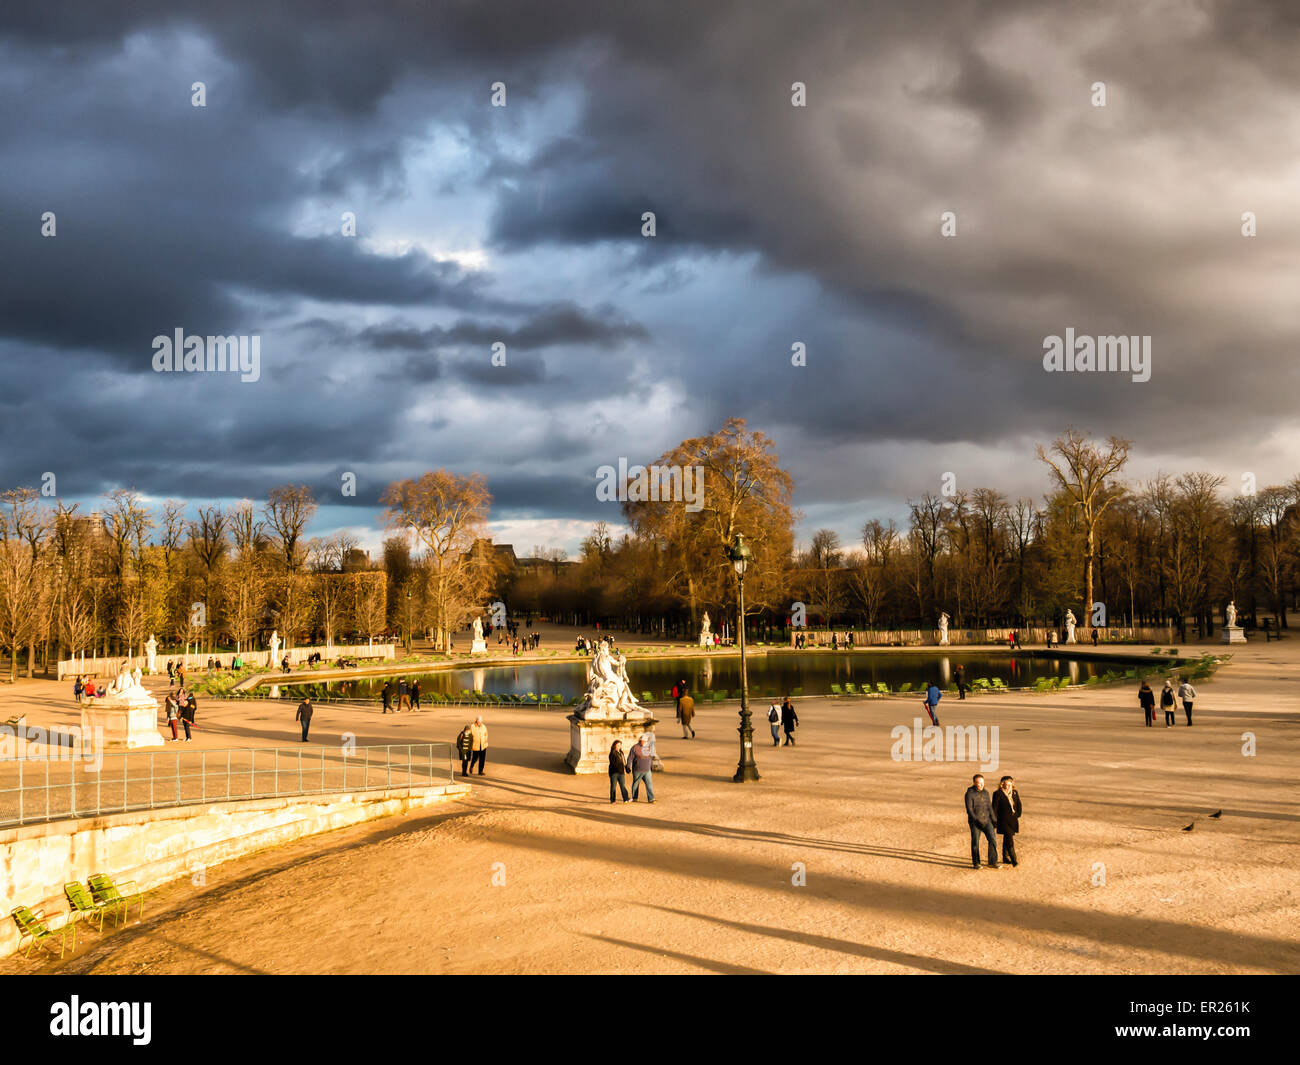 Paris, Tuilerires Garden - Bassin Octogonal pond, sculptures, sunlight and dramatic storm clouds - Stock Image